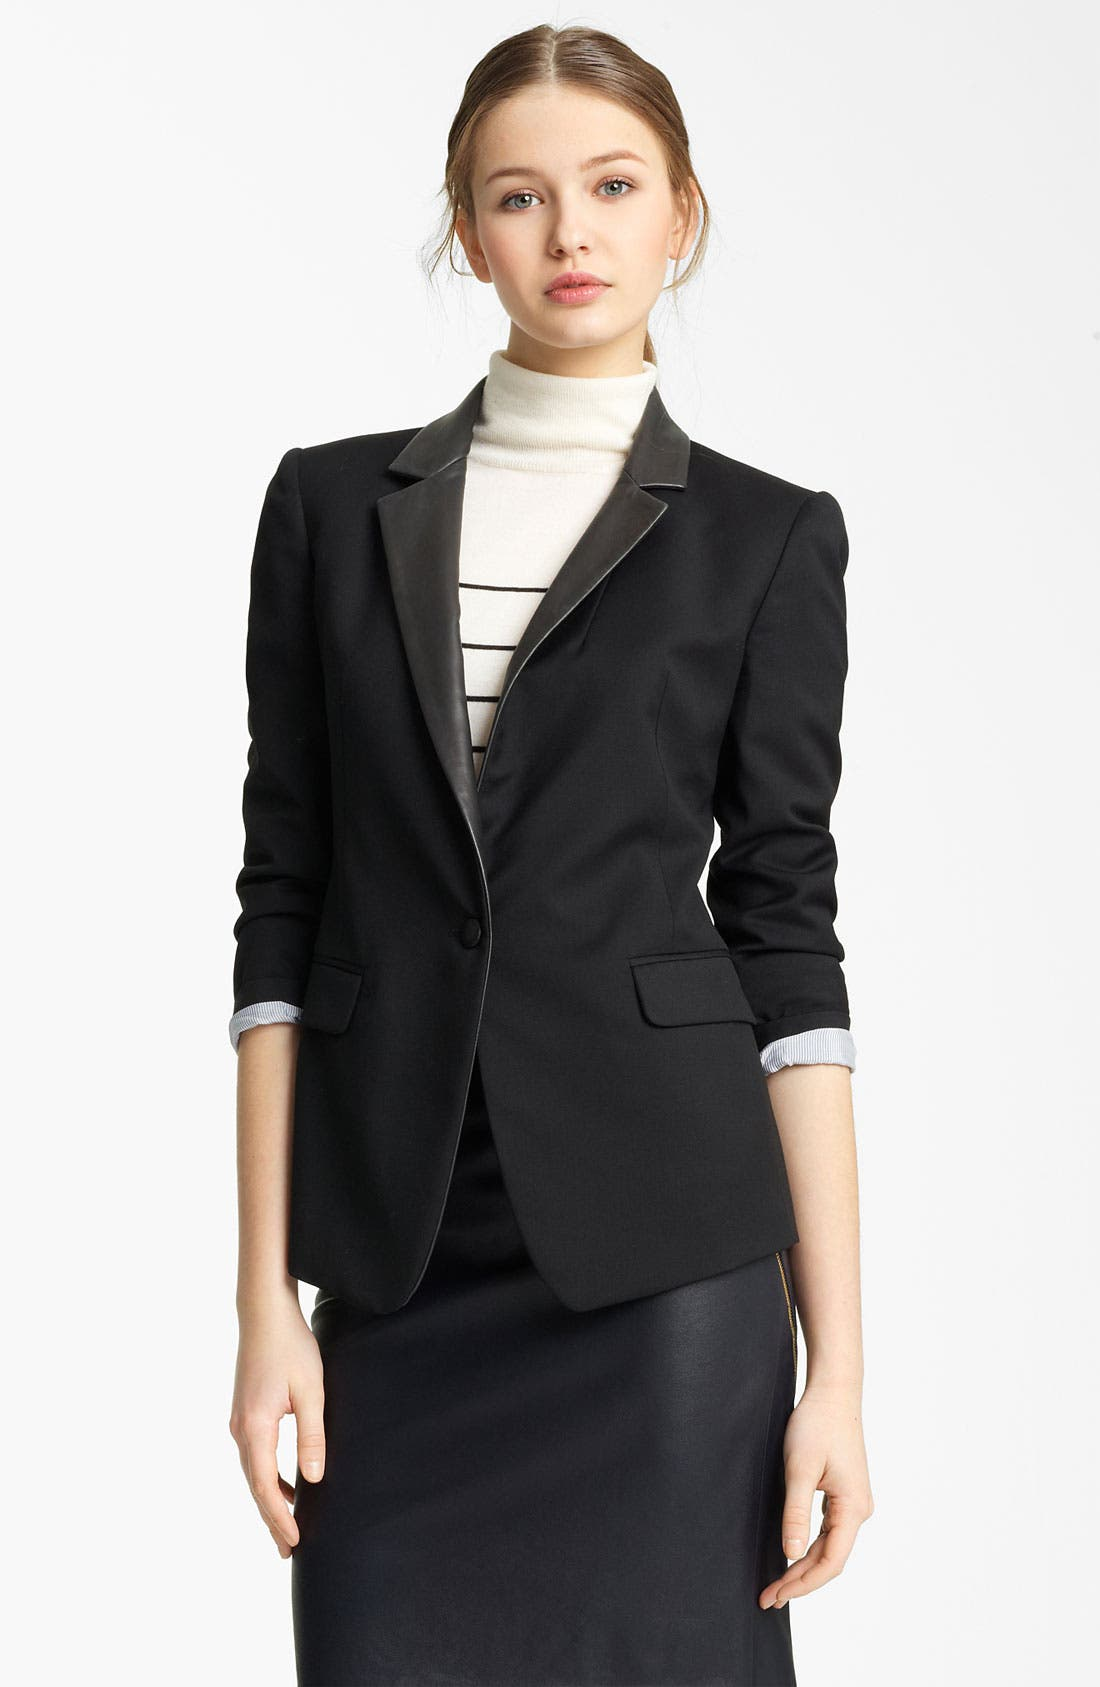 Main Image - Band of Outsiders Leather Trim Blazer